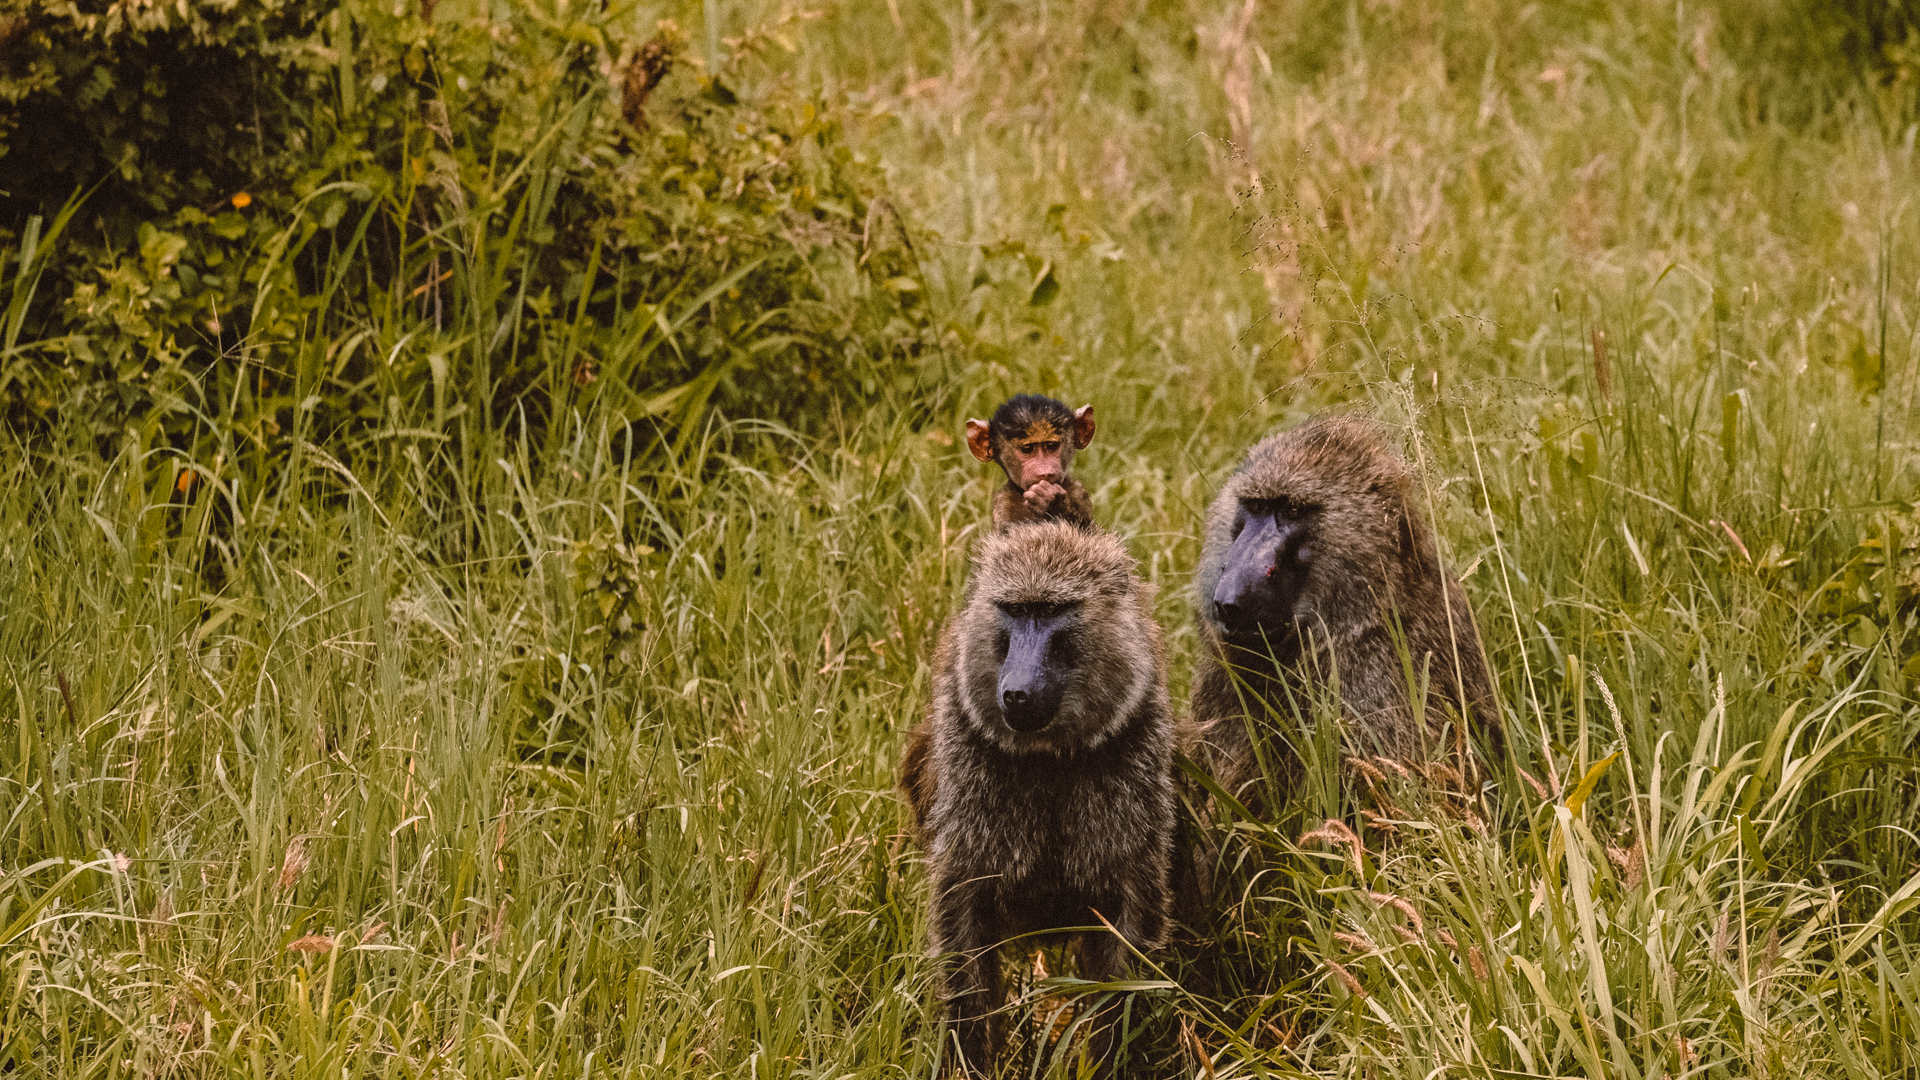 A family of yellow baboon monkeys with a baby in the Serengeti National Park, Tanzania